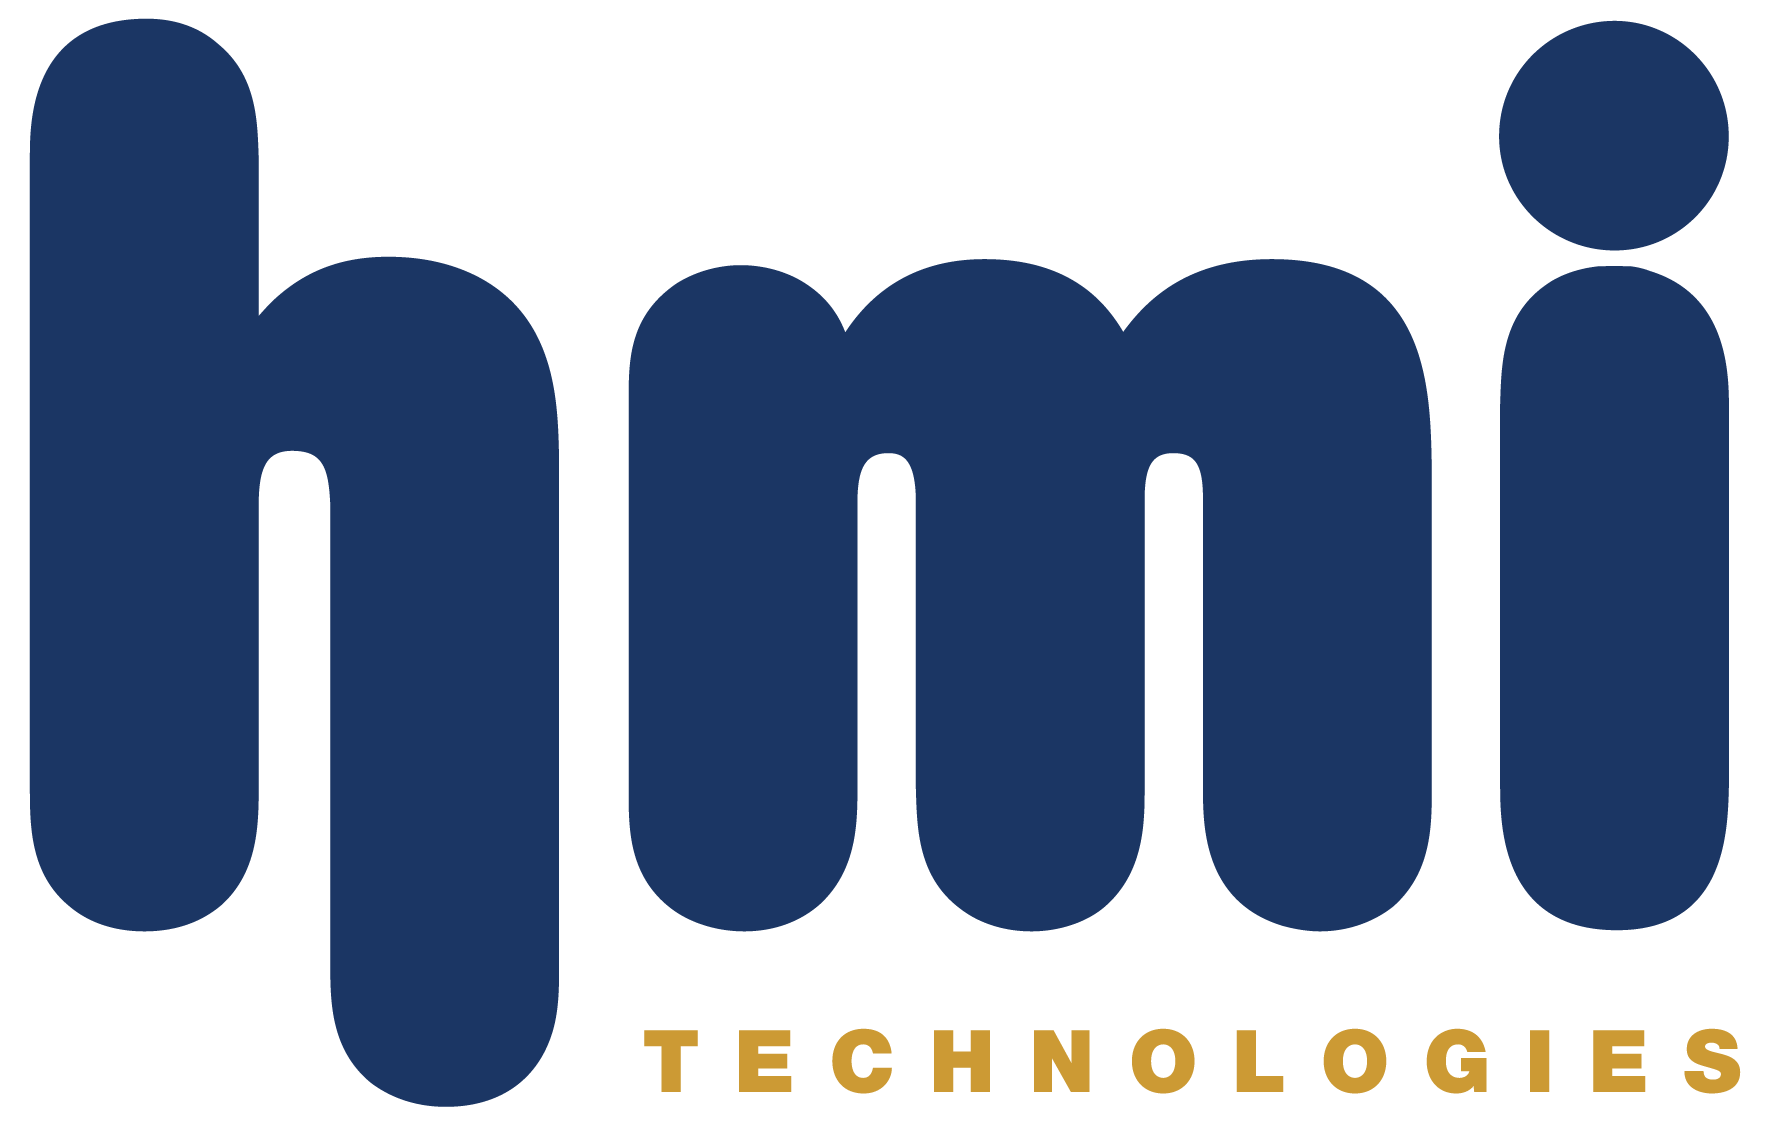 ITS New Zealand sponsor HMI Technologies